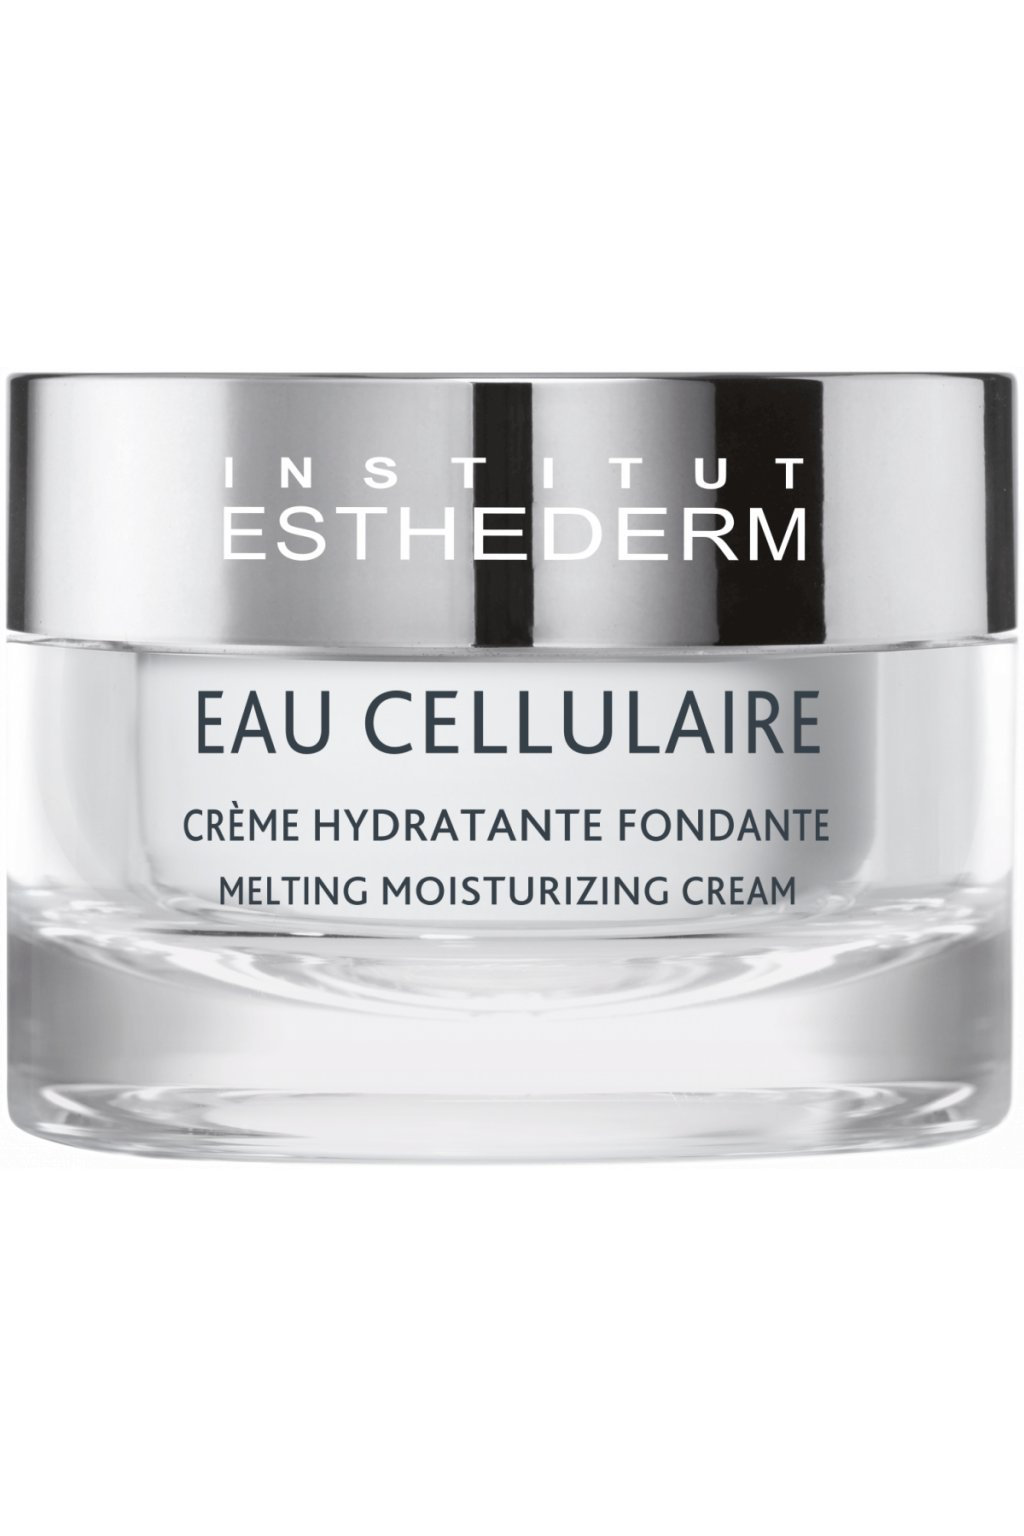 CELLULAR WATER MELTING MOISTURIZING CREAM 50 ml